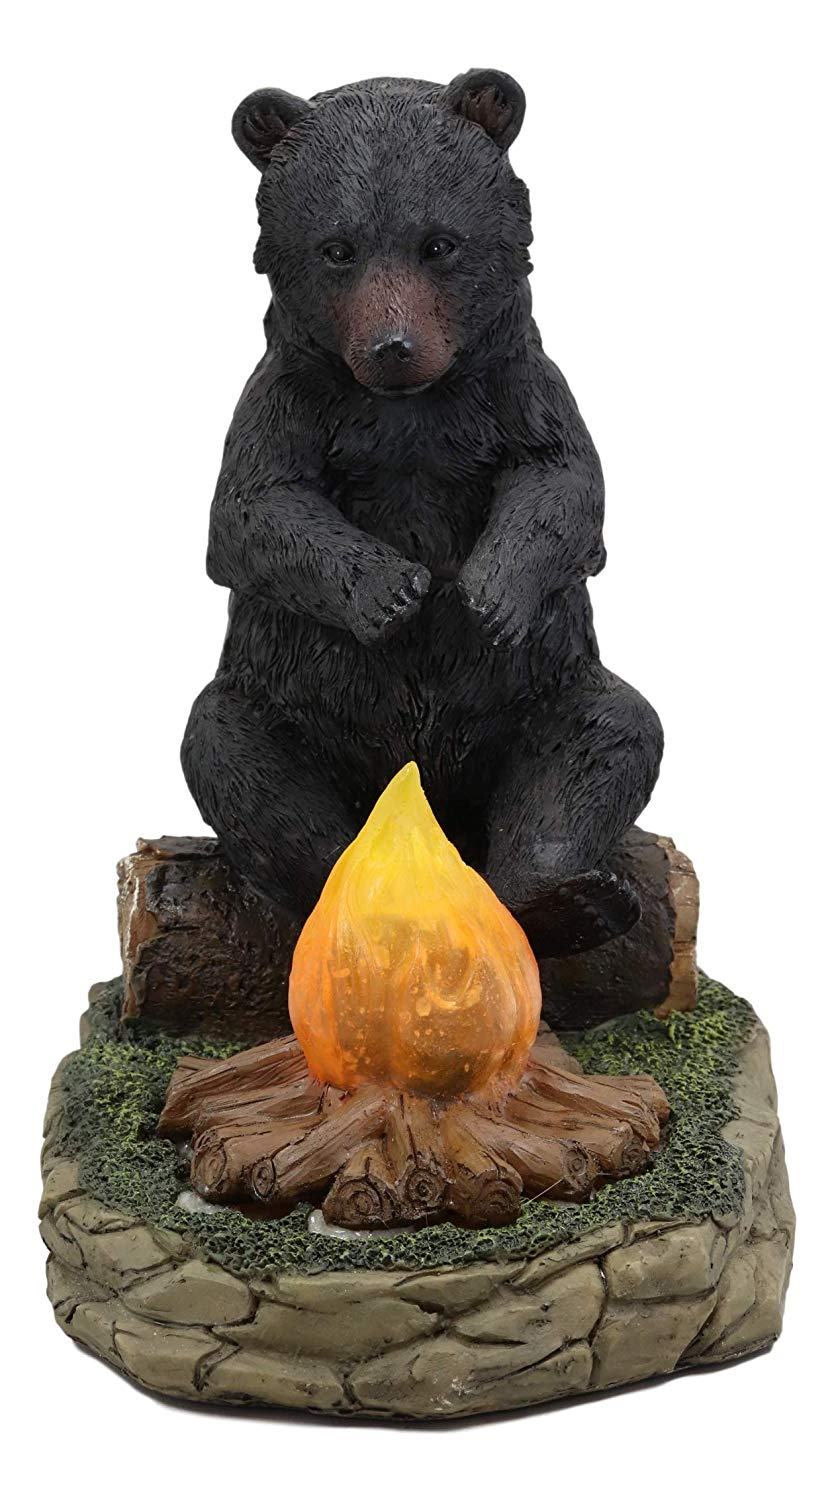 Ebros Whimsical Rustic Forest Black Bear Warming Hands By Campfire Led Ebros Gift